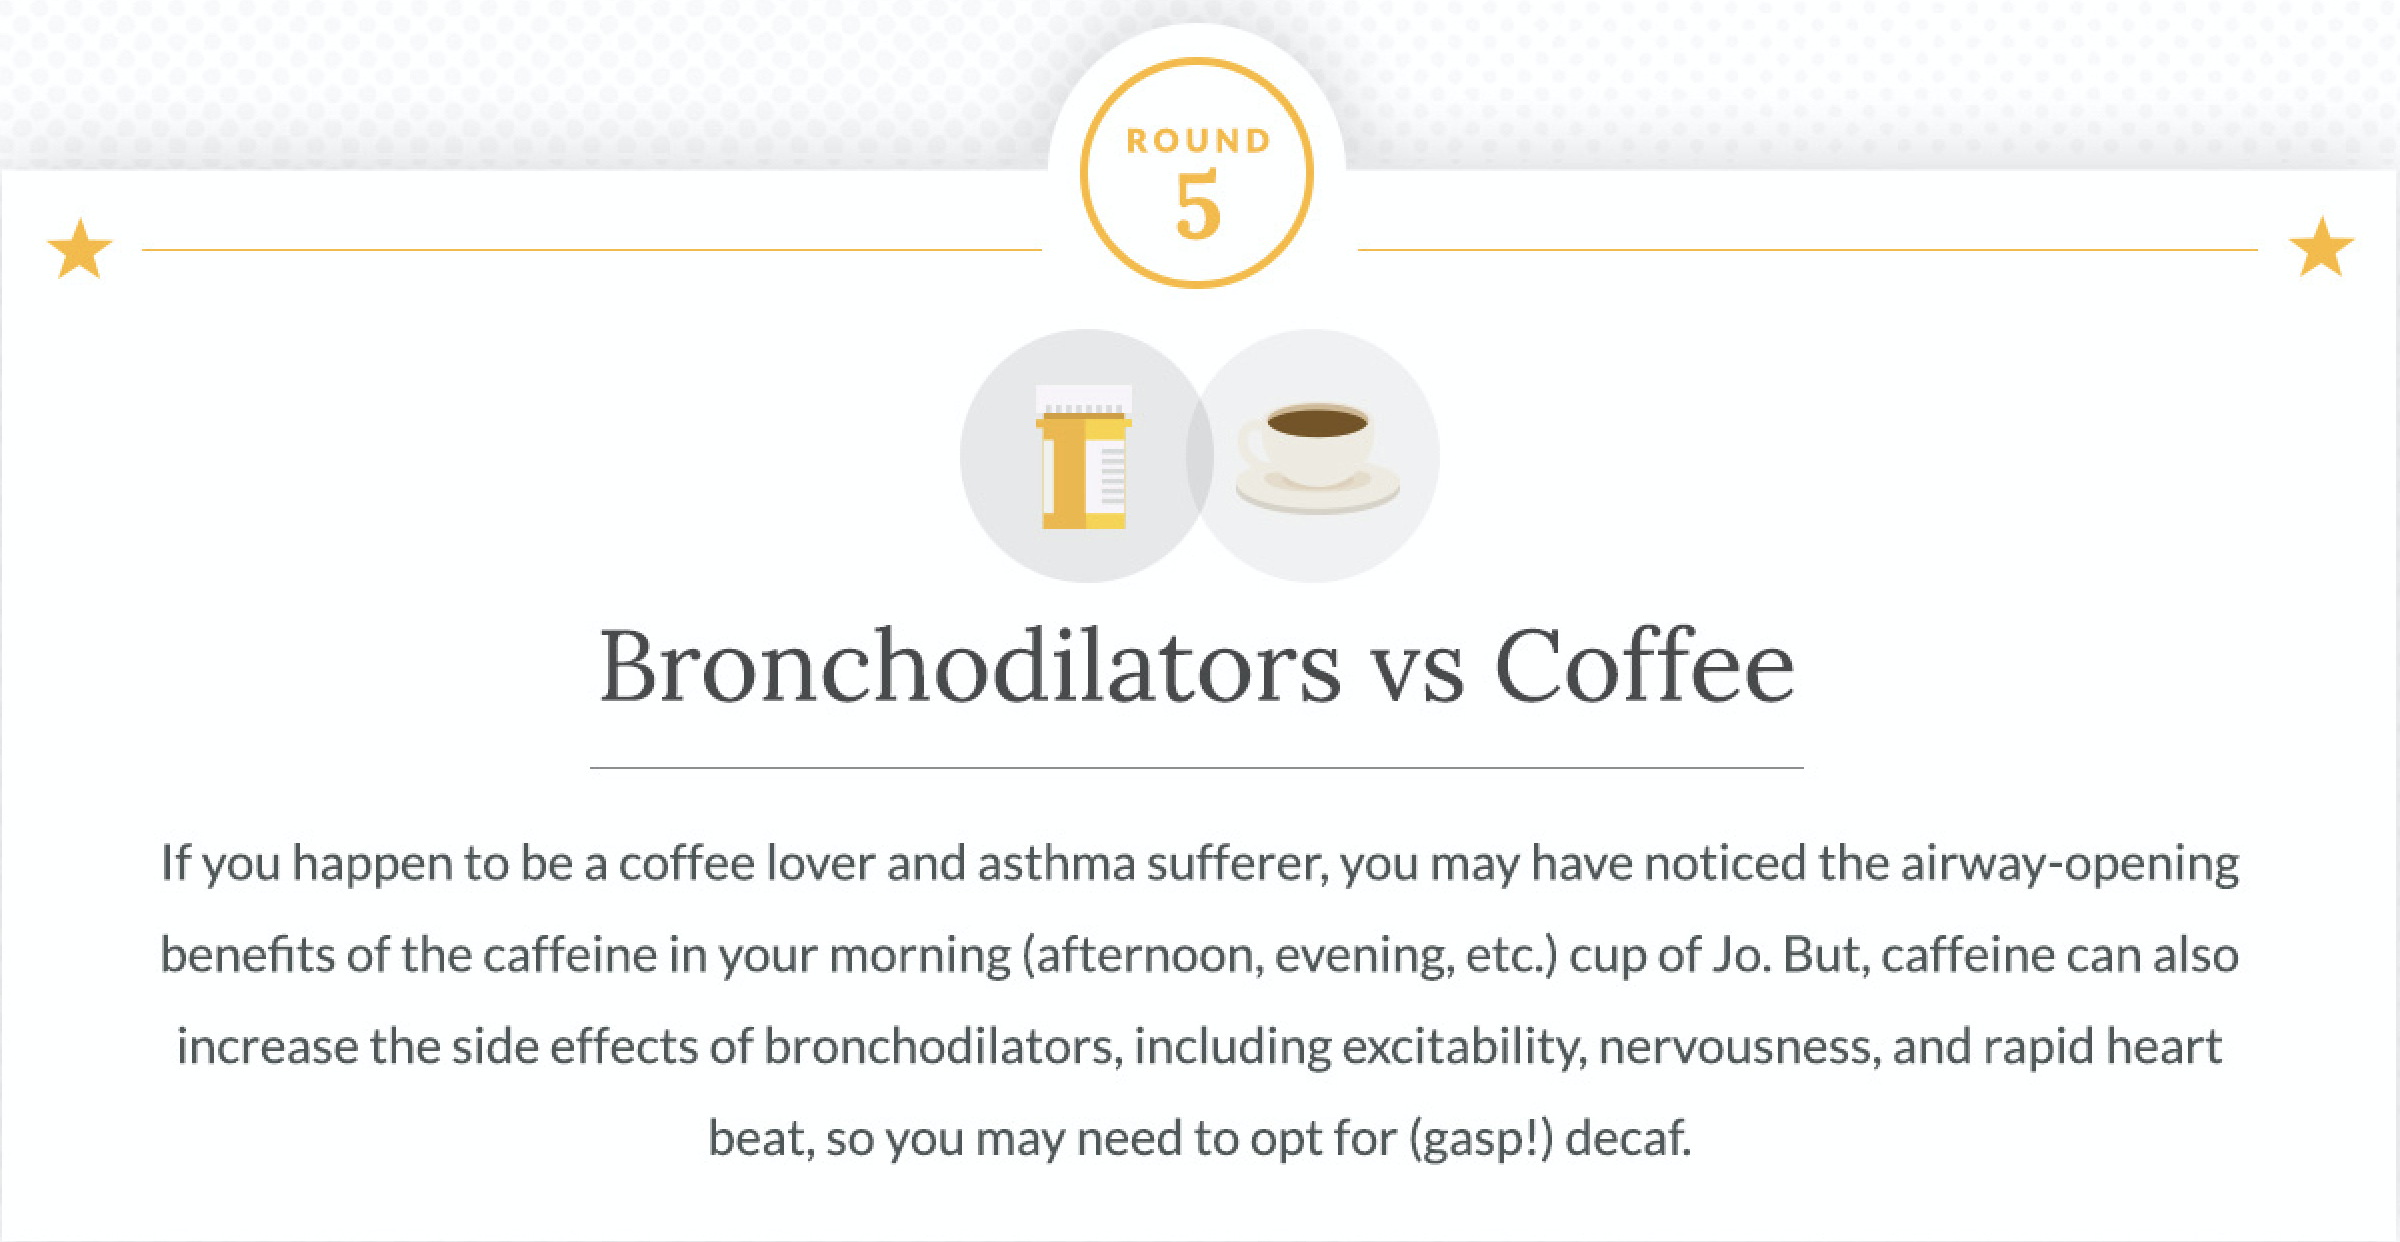 Bronchodilators and Coffee